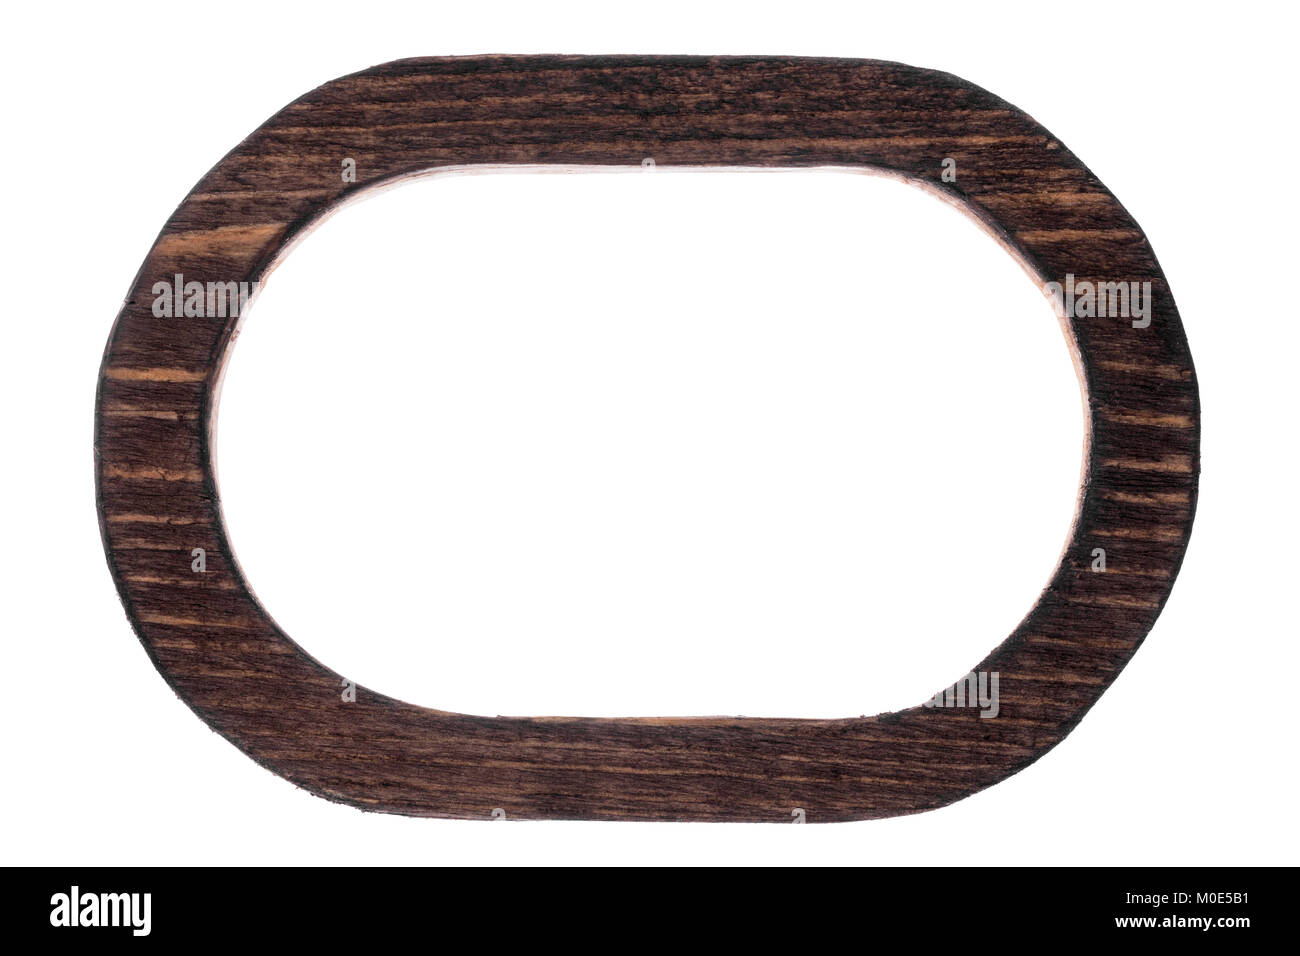 Beautiful one-piece wooden oval frame, isolated on white background ...